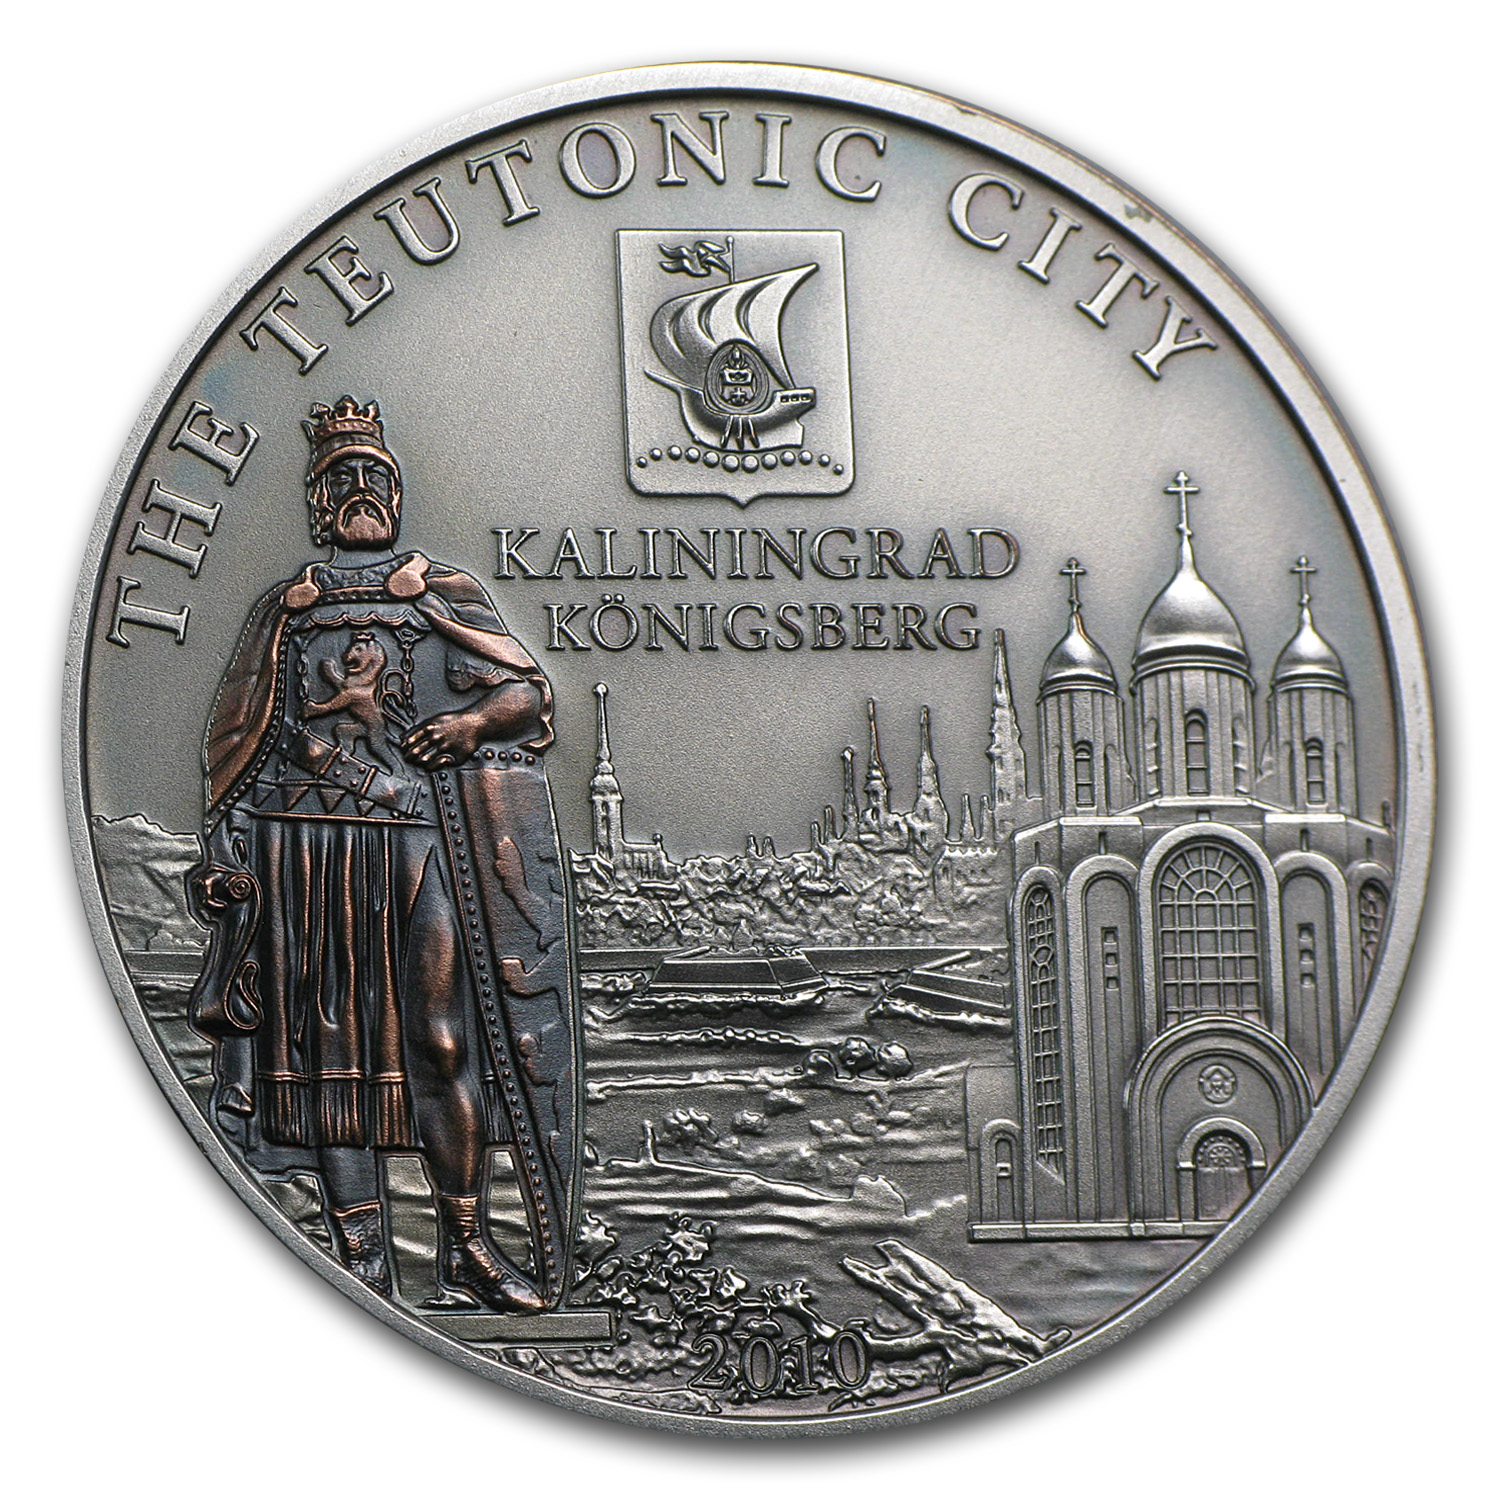 2010 Cook Islands Silver $5 Hanseatic League Kaliningrad